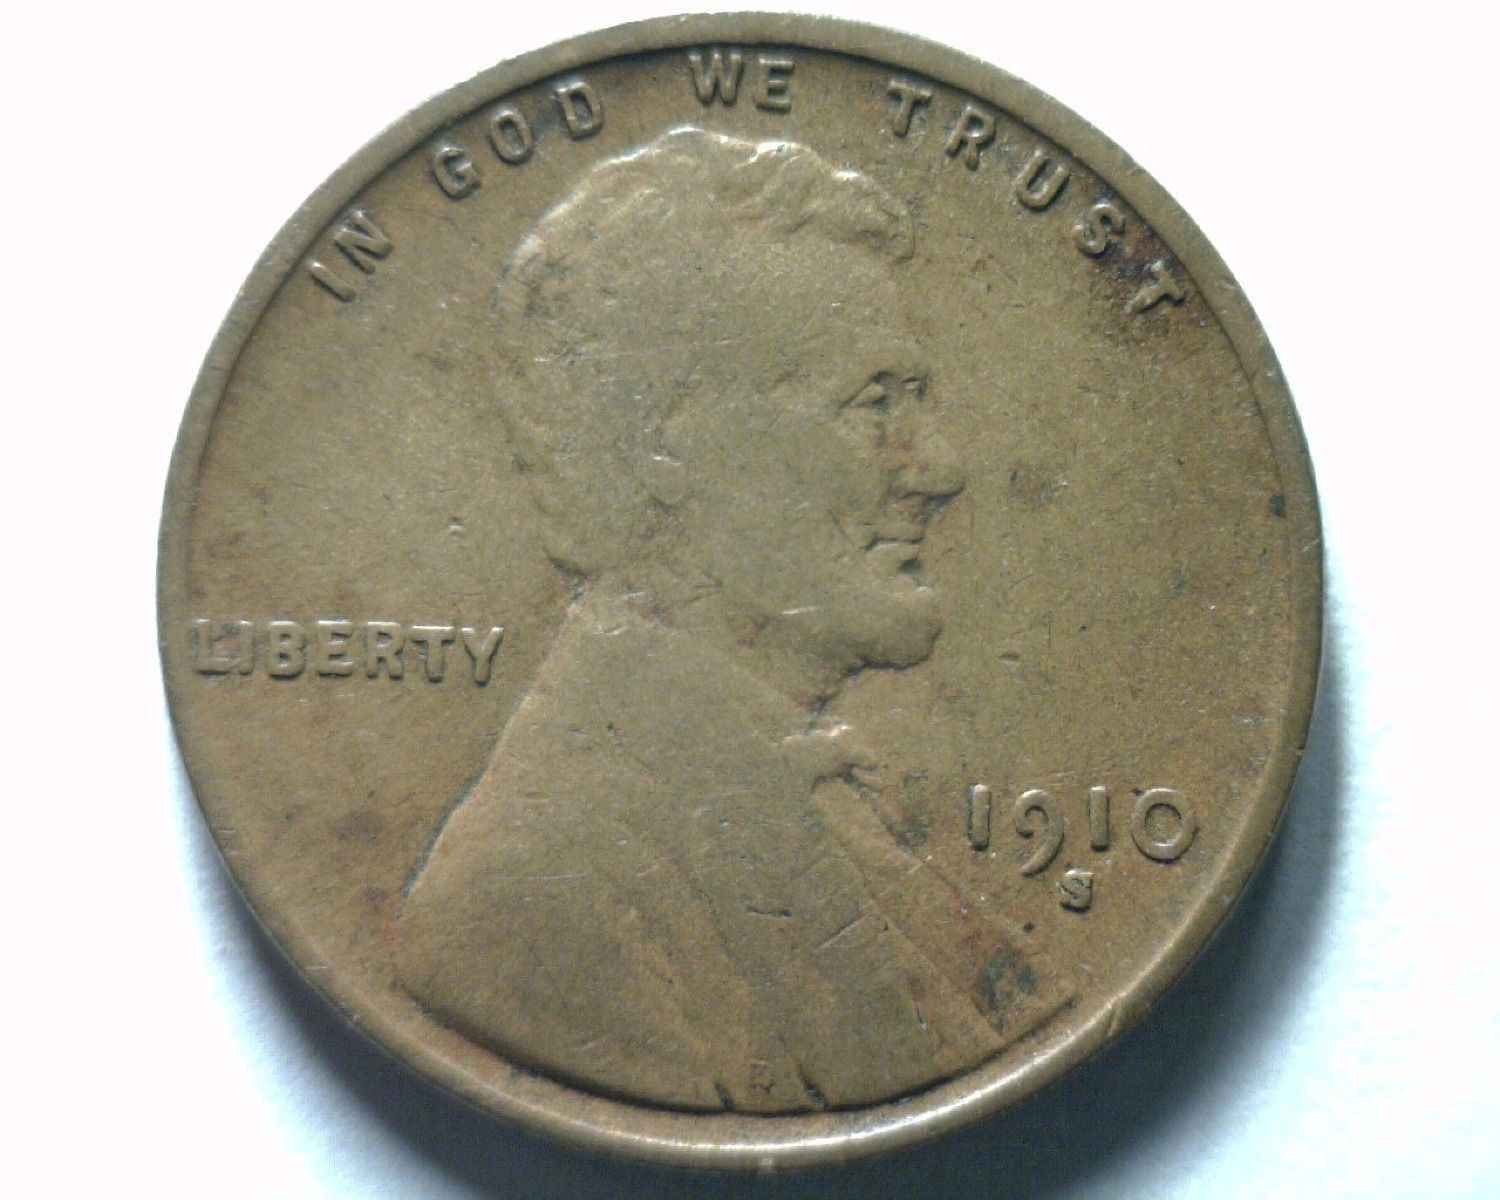 1910-S LINCOLN CENT VERY FINE / EXTRA FINE VF/XF VERY FINE /EXTREMELY FINE VF/EF - $39.00